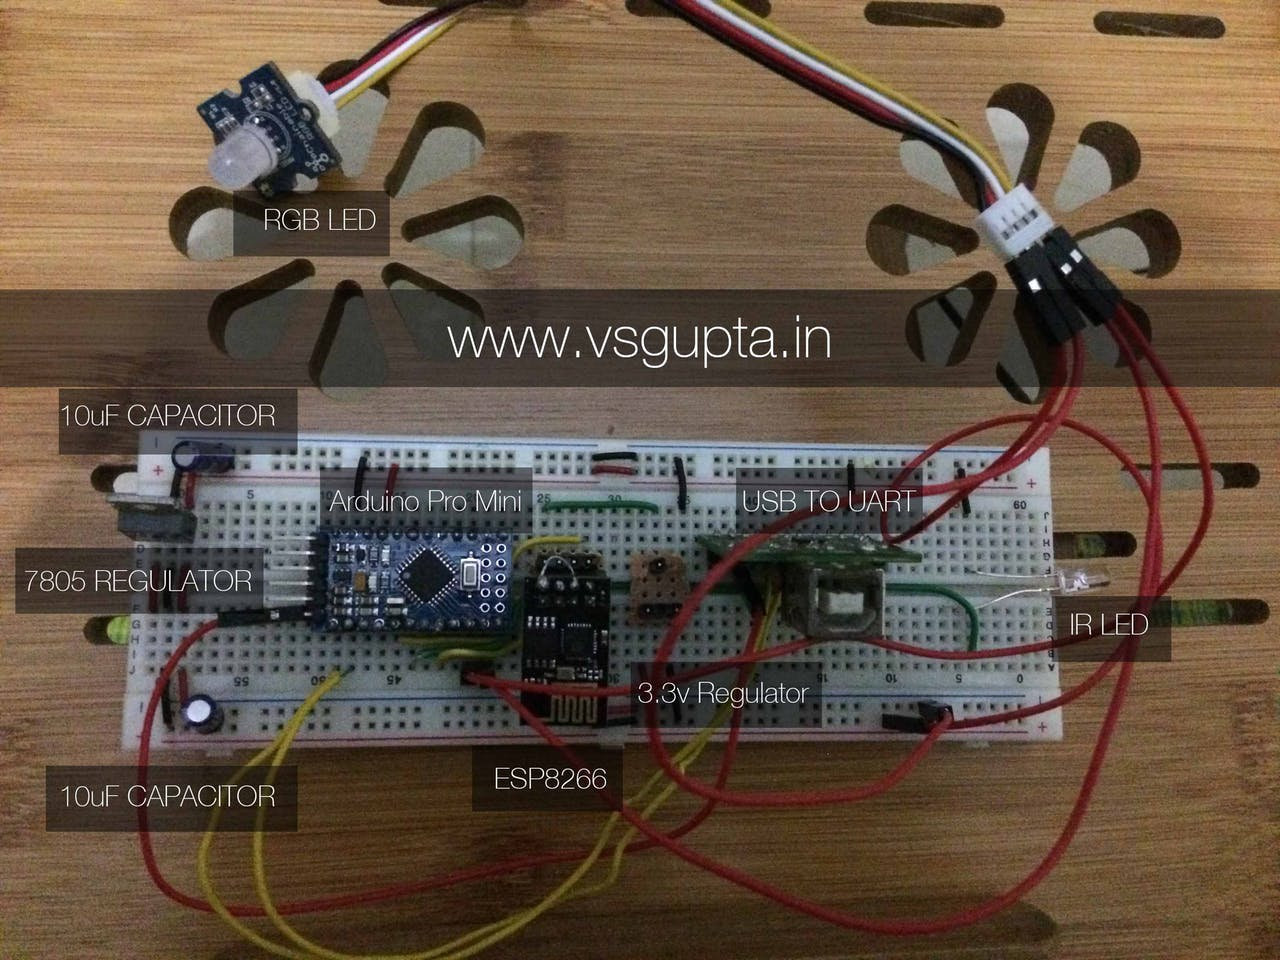 Controlling Rgb Led Strip With Google Home Control Leds On Off Ir Remote And Arduino P Marian Infrared